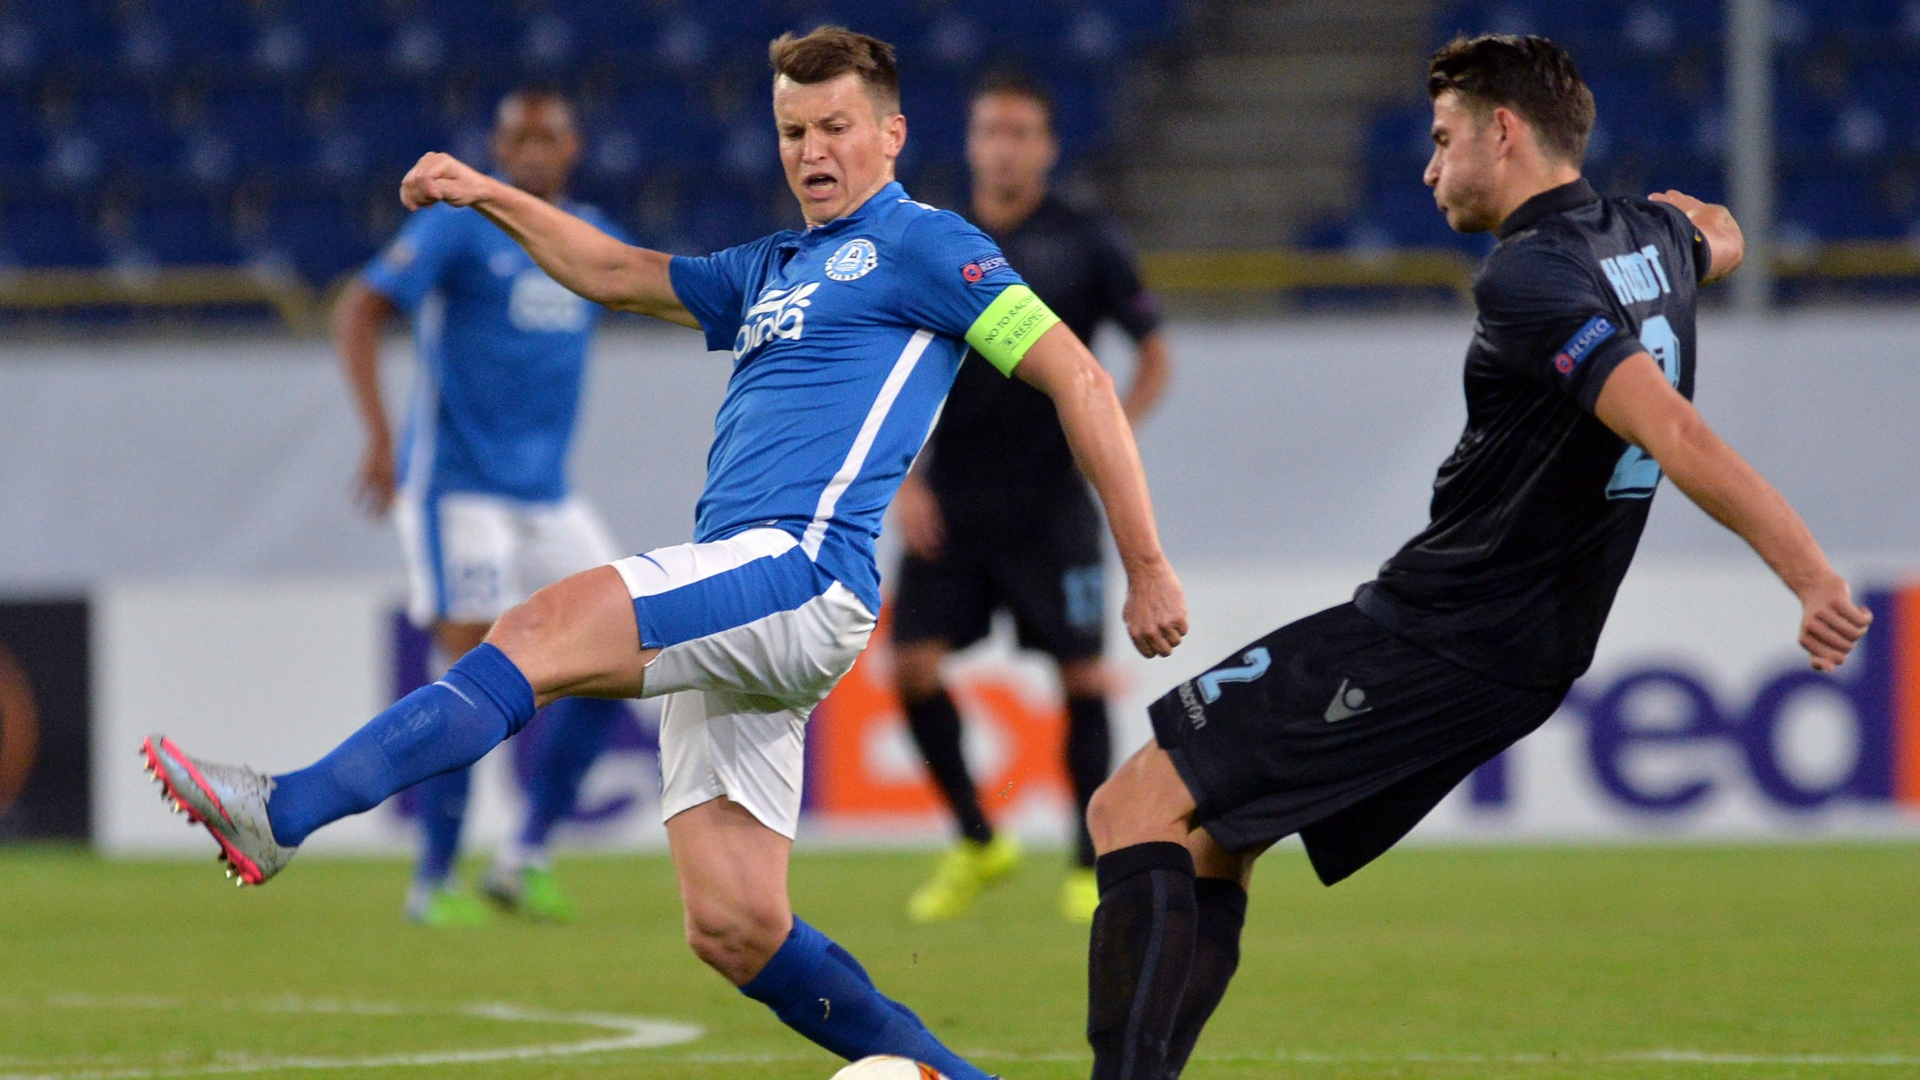 Video: Dnipro Dnipropetrovsk vs Lazio